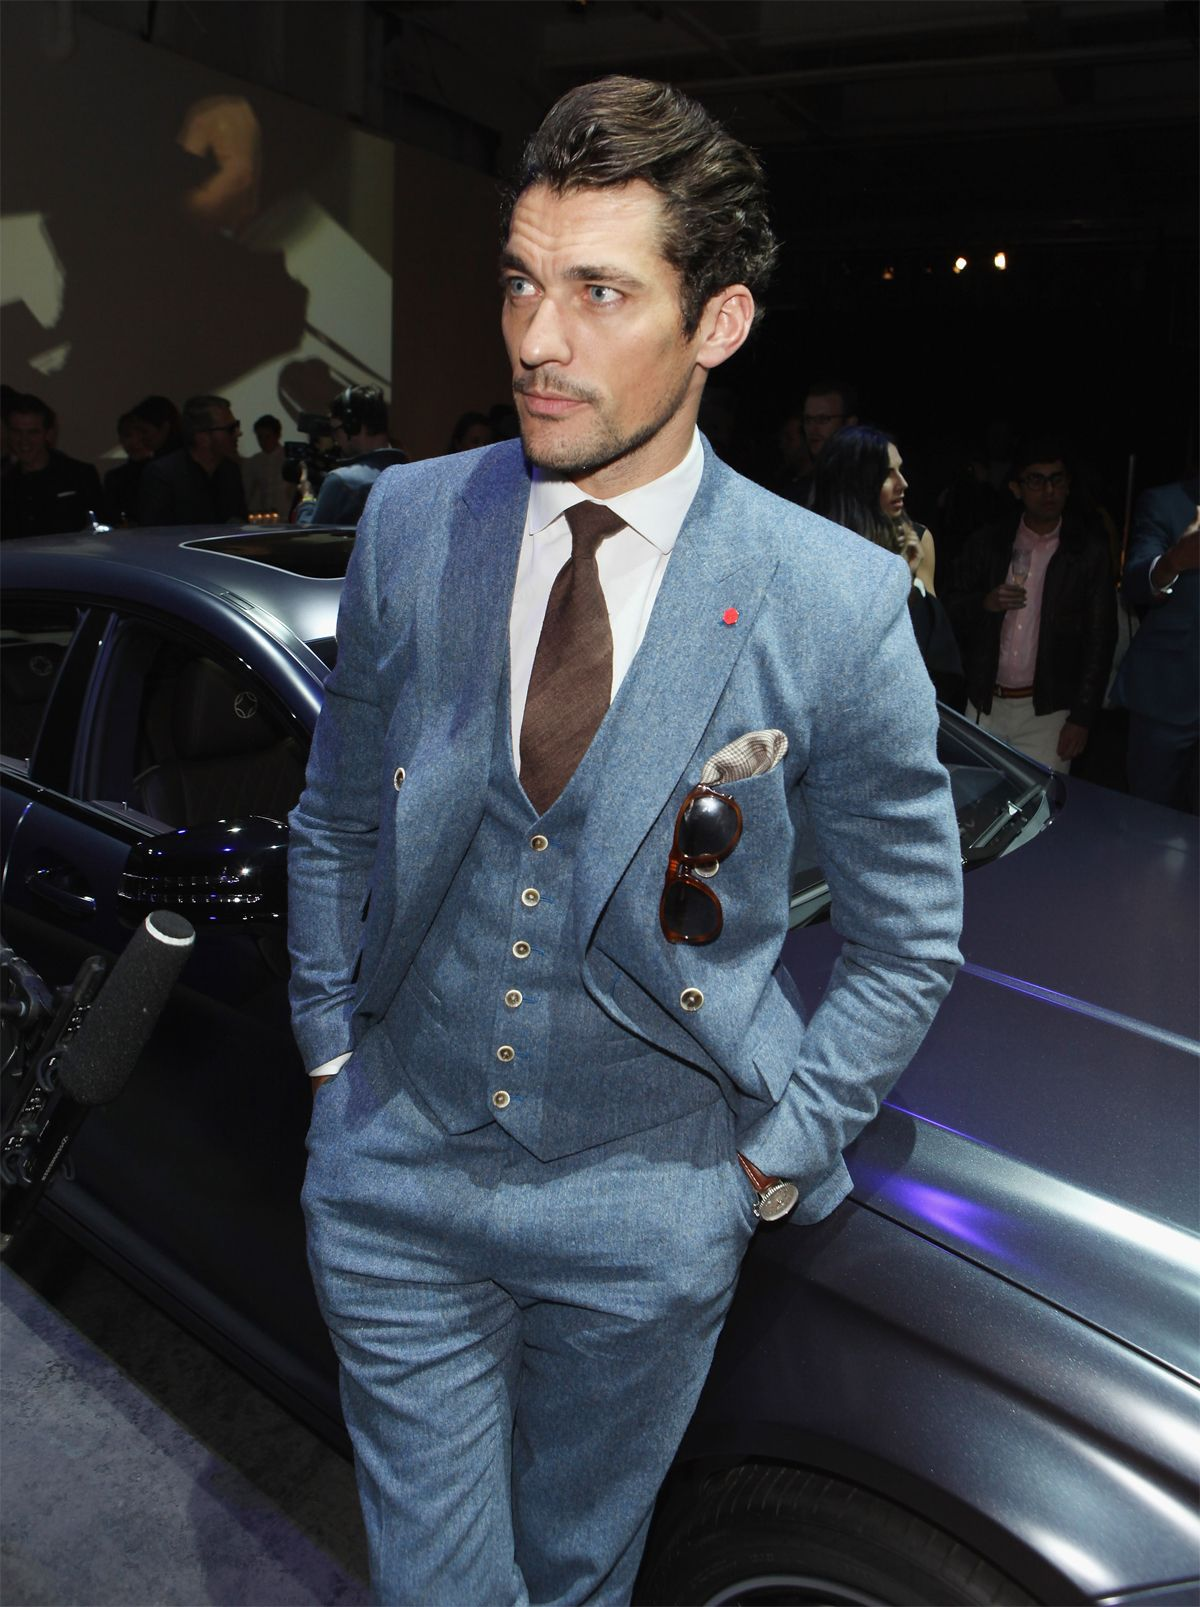 Pin by Andrew Robertson on Suits | Pinterest